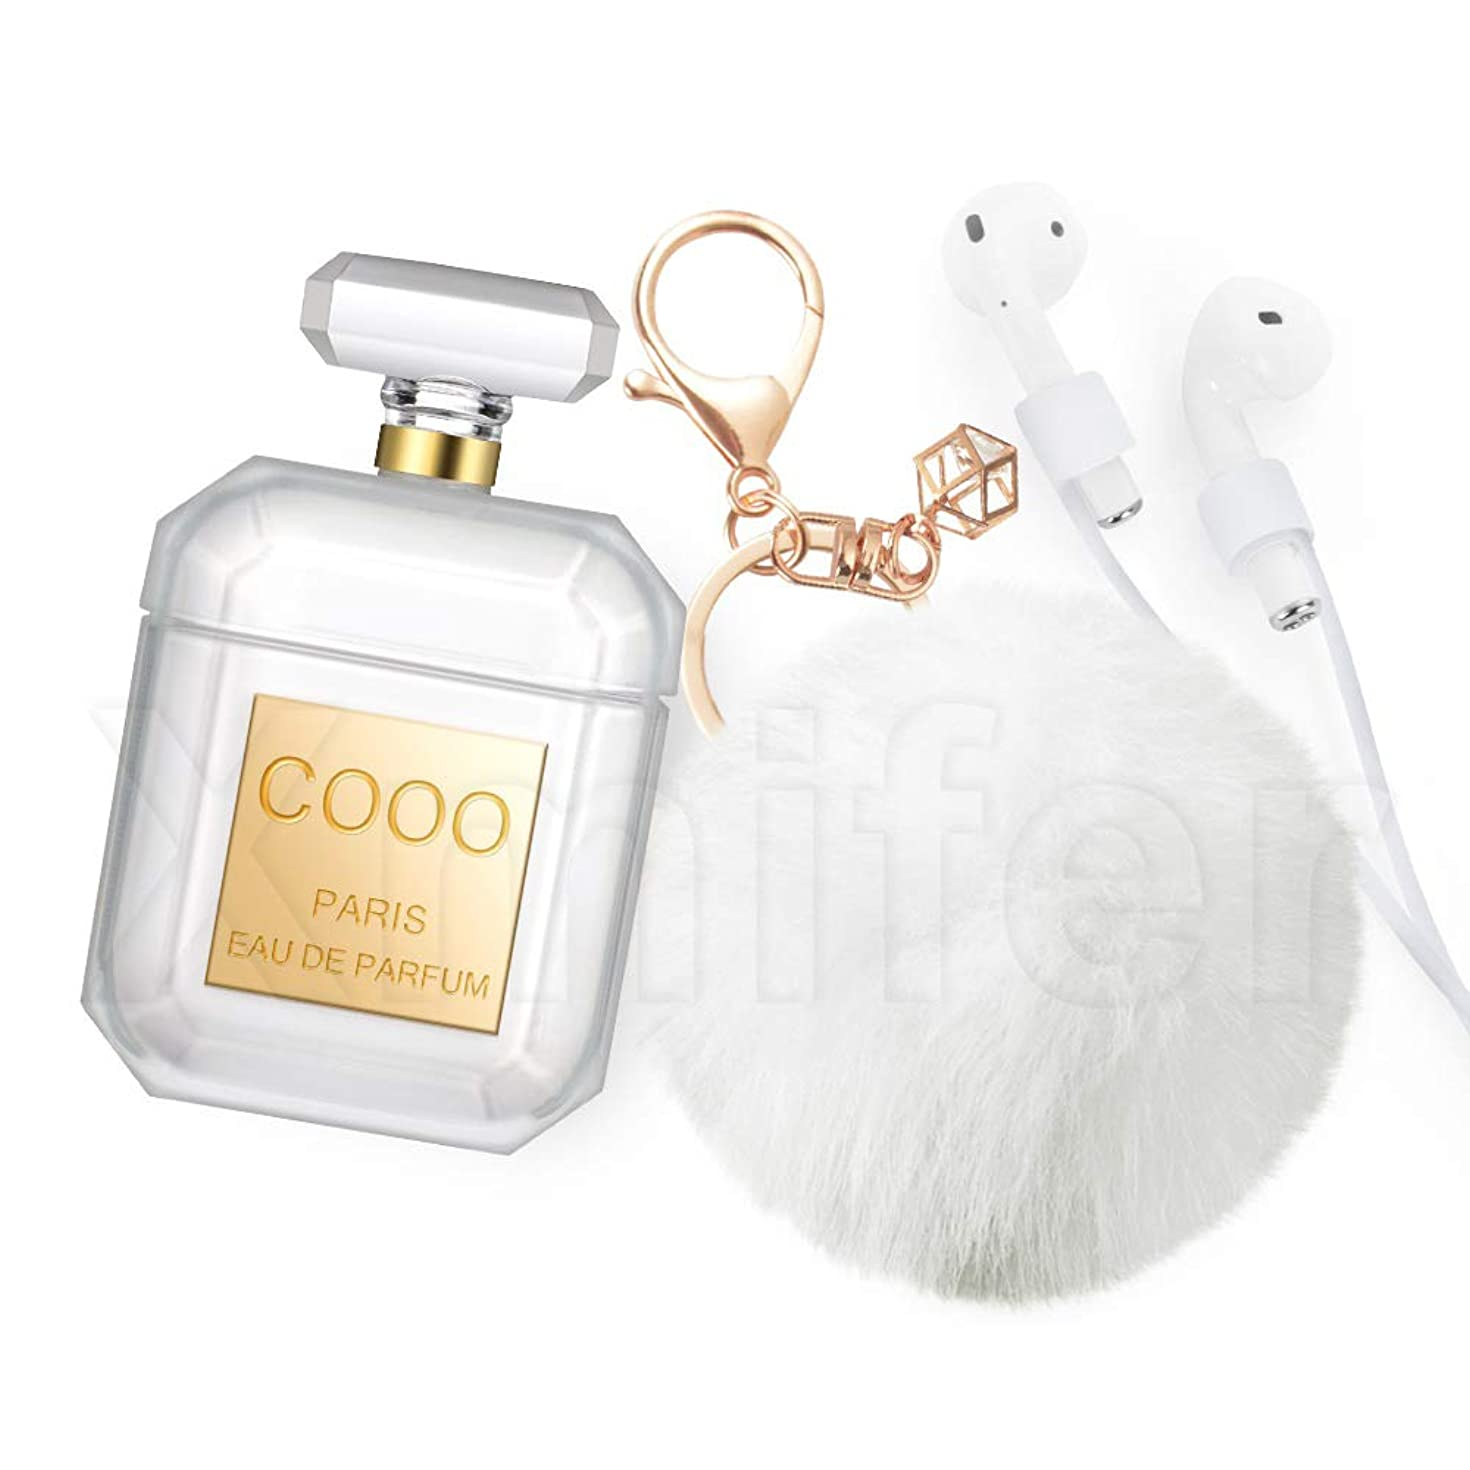 Xmifer AirPods Case, Cute Airpods Case Keychain Drop Proof (Silicone Skin for AirPods Charging Case 2/1) with Fluffy Fur Ball Keychain for Airpods 2/1 Perfume Bottle Gold with Strap